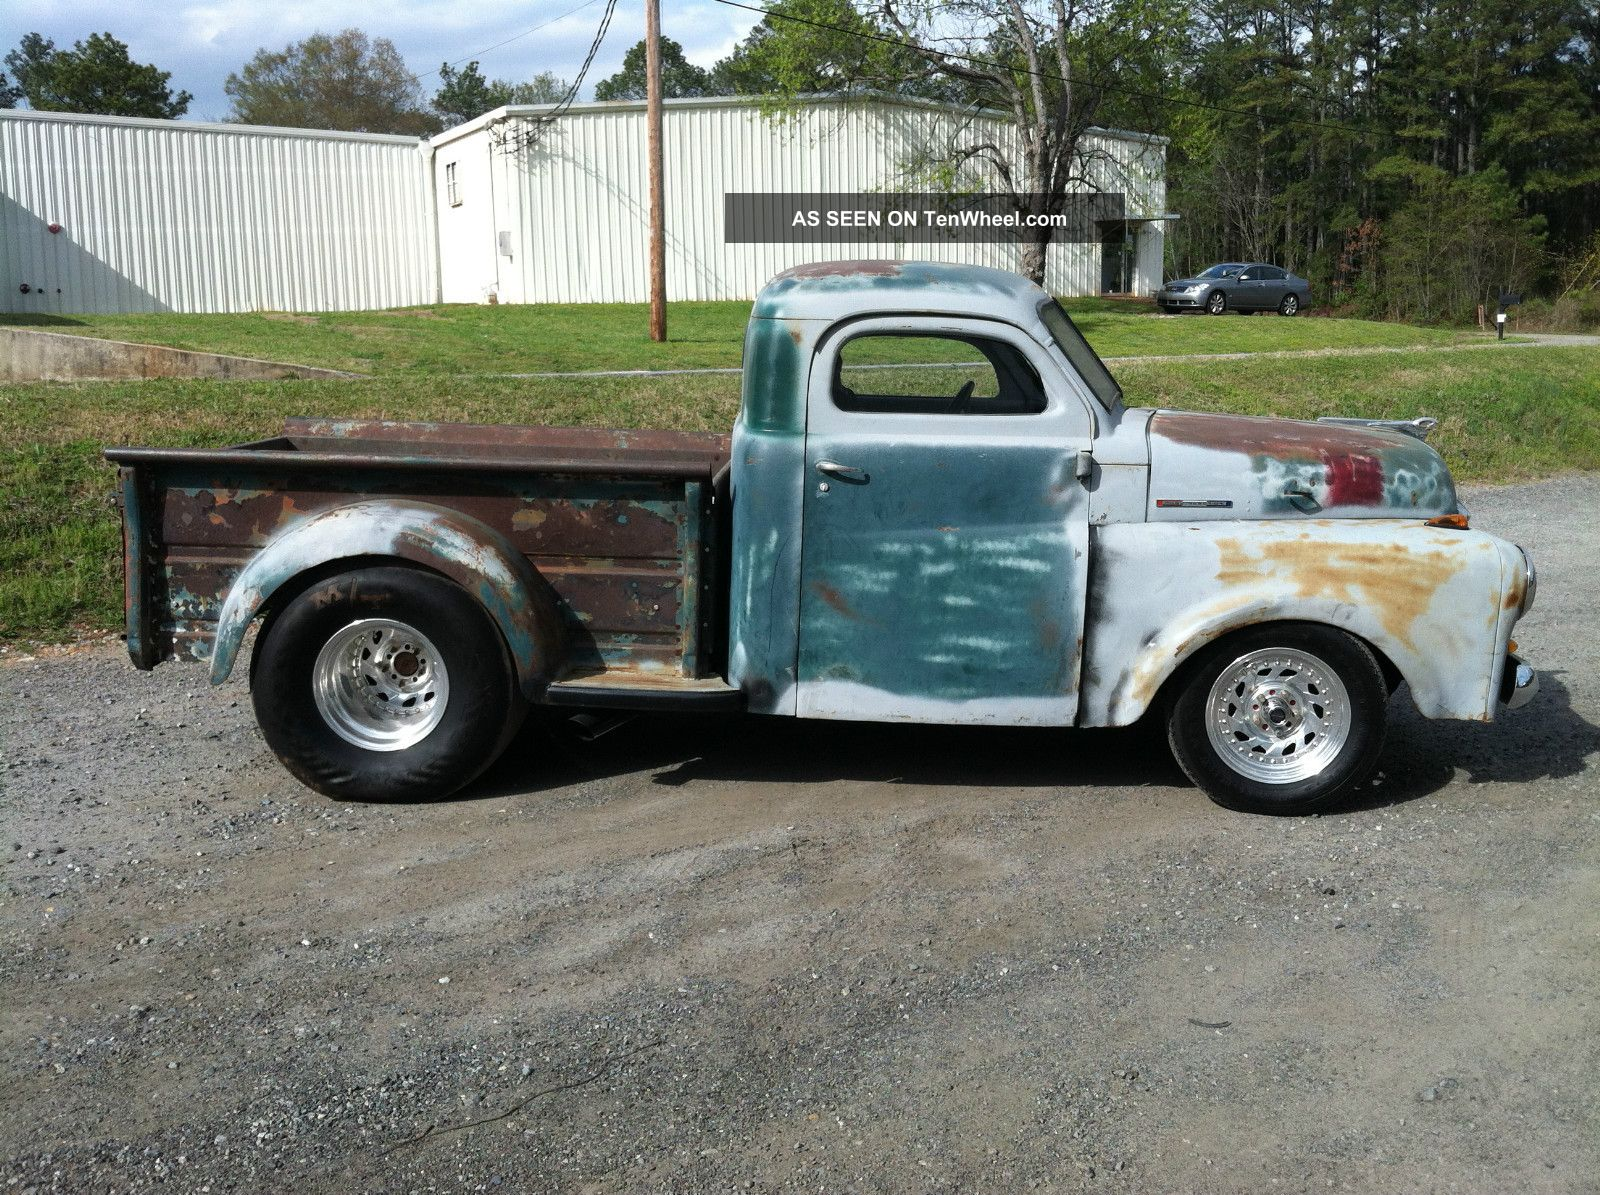 1948 Dodge Pickup Truck Rat Rod 355 Engine Custom Frame Racing Wheels Ford Hot